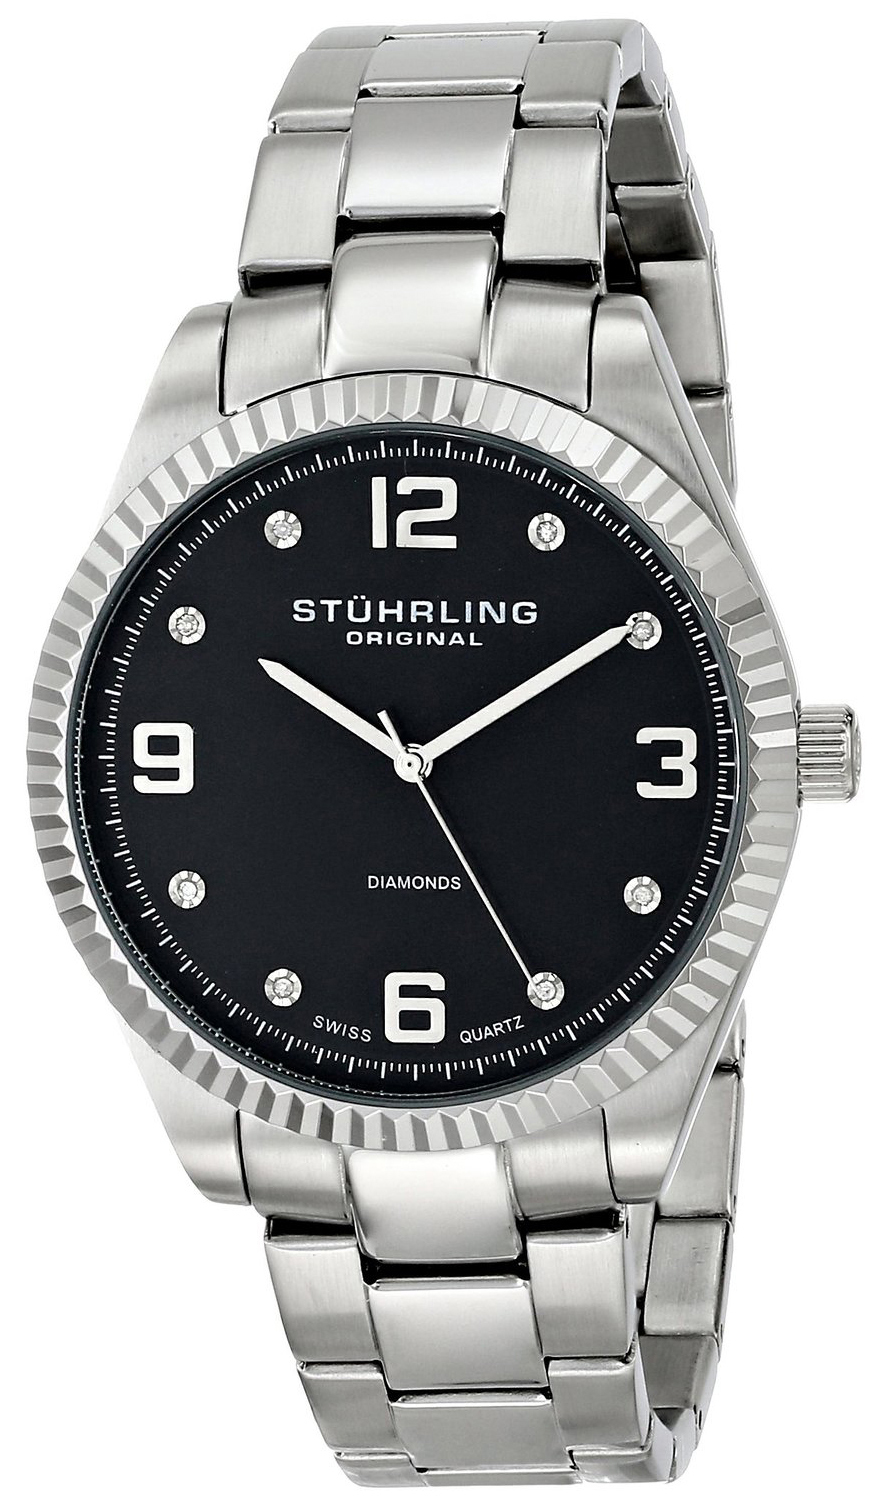 Stührling Original Classic Allure Herreklokke 607G.02 Sort/Stål - Stührling Original